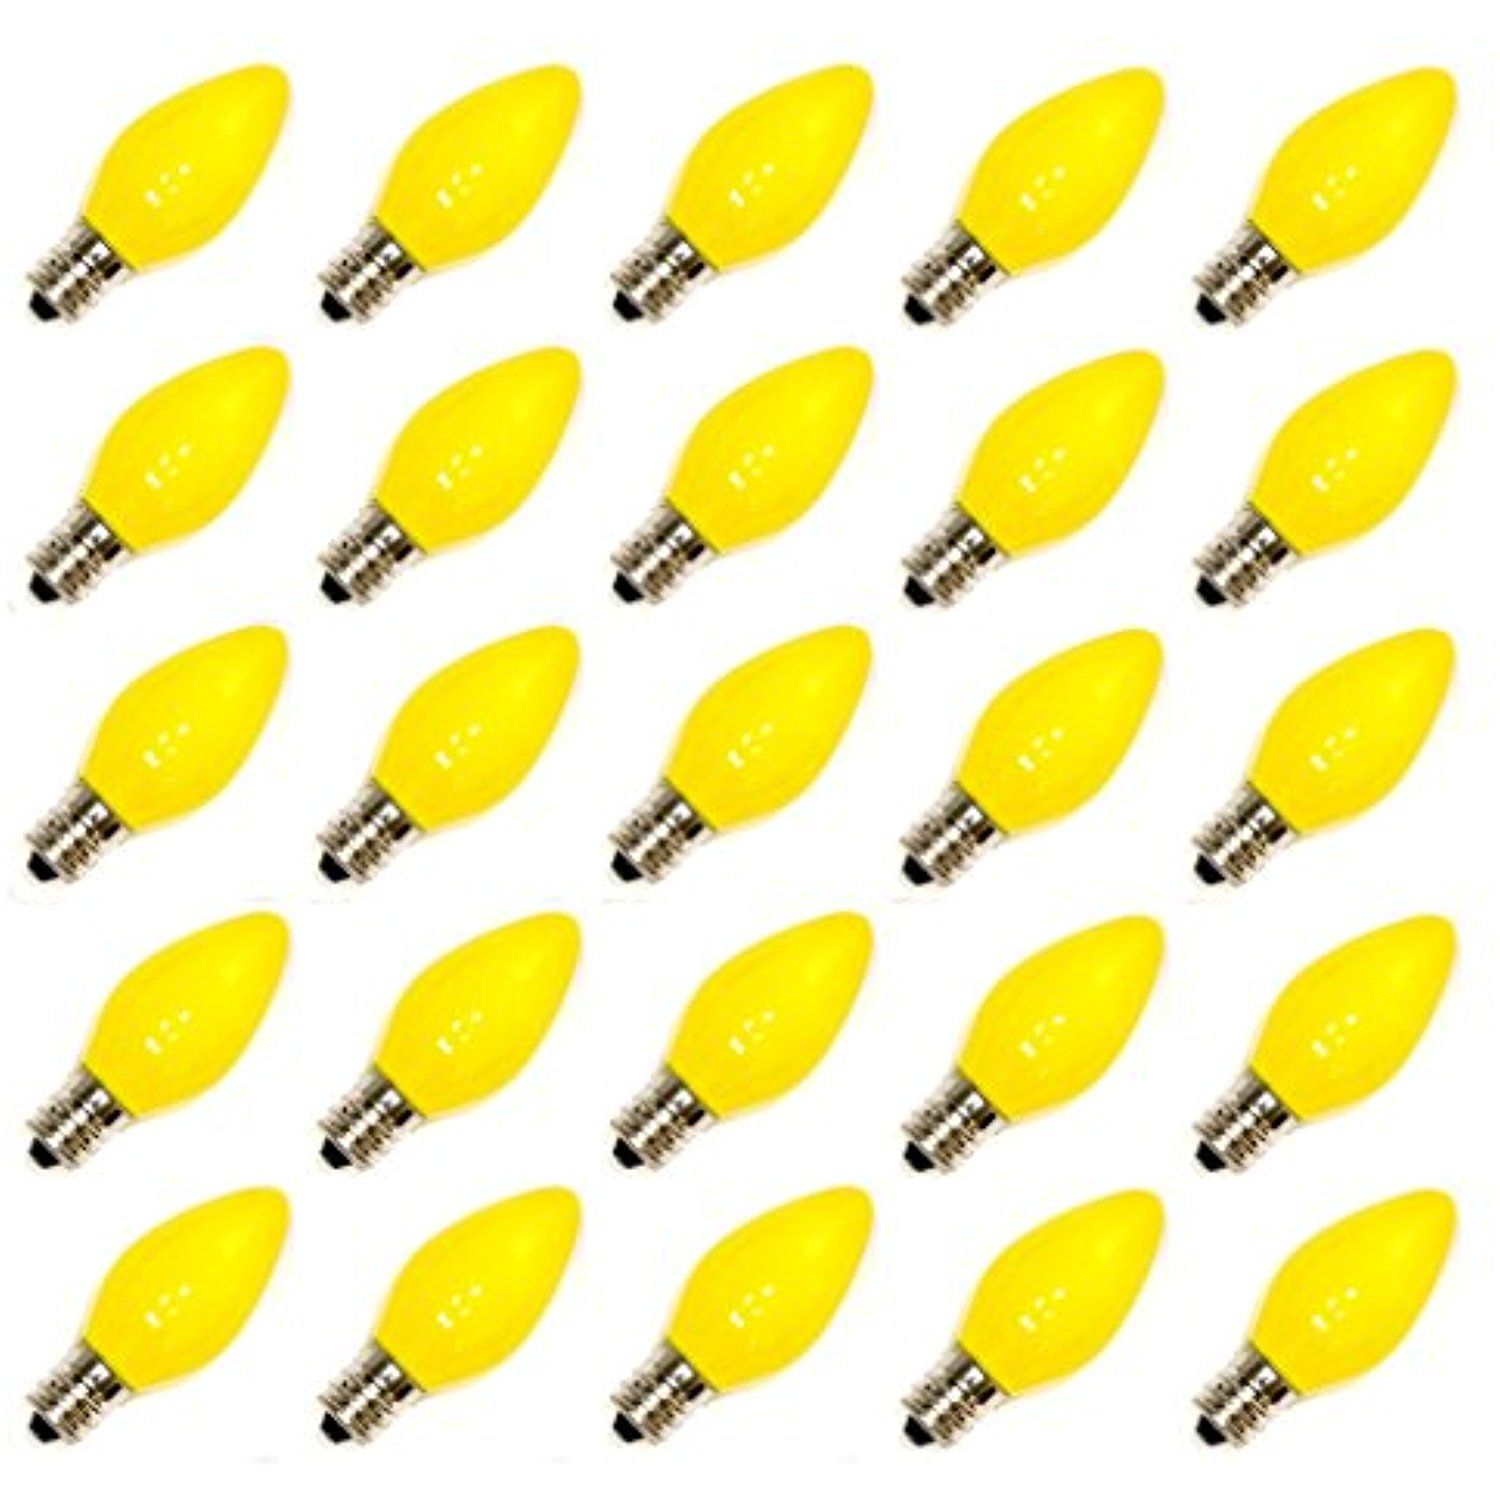 vickerman 10058 c7 candelabra screw base ceramic yellow 25 pack christmas light bulbs v471755